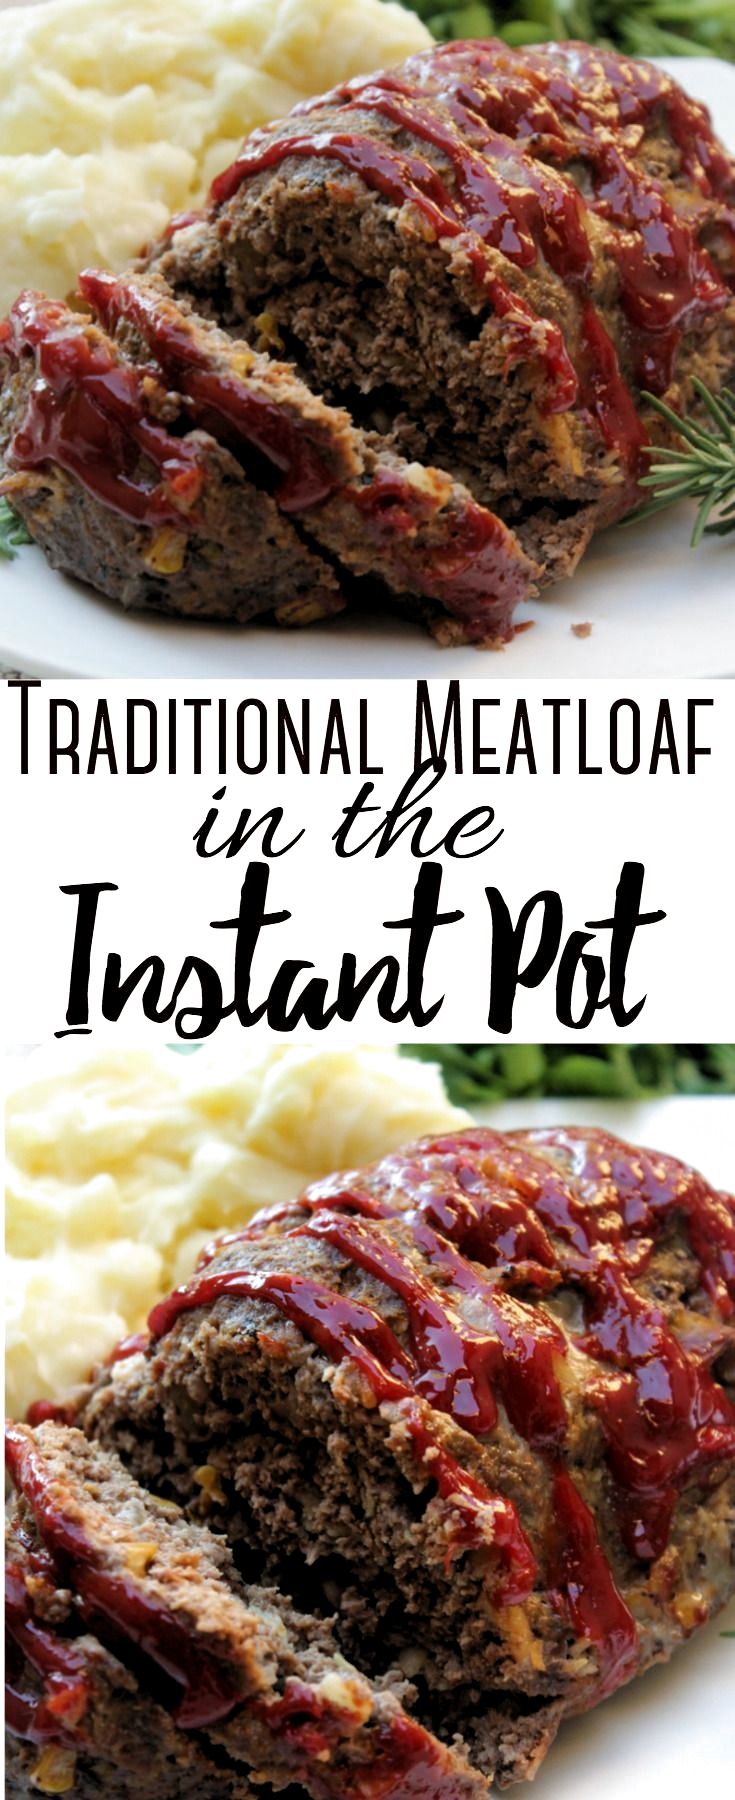 Pin By Dave Johnson On Meals Traditional Meatloaf Beef Recipe Instant Pot Traditional Meatloaf Recipes